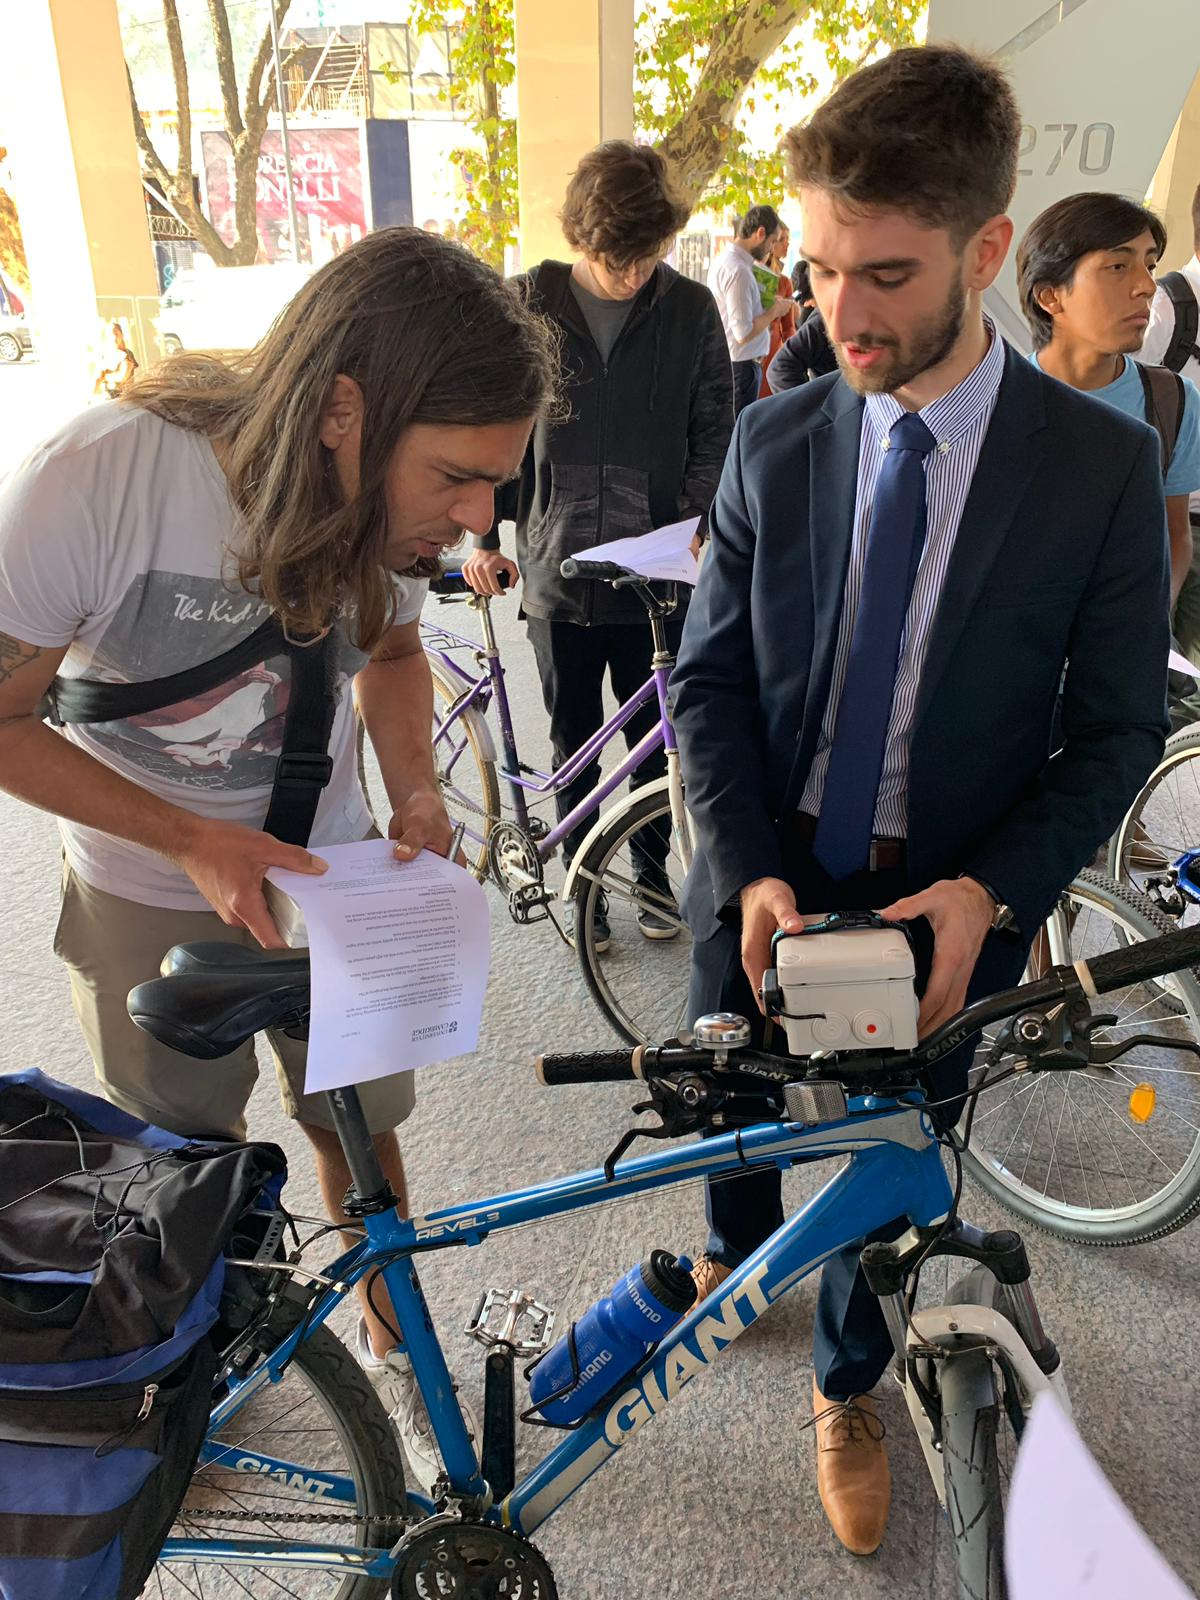 Attaching sensors to bikes in Buenos Aires